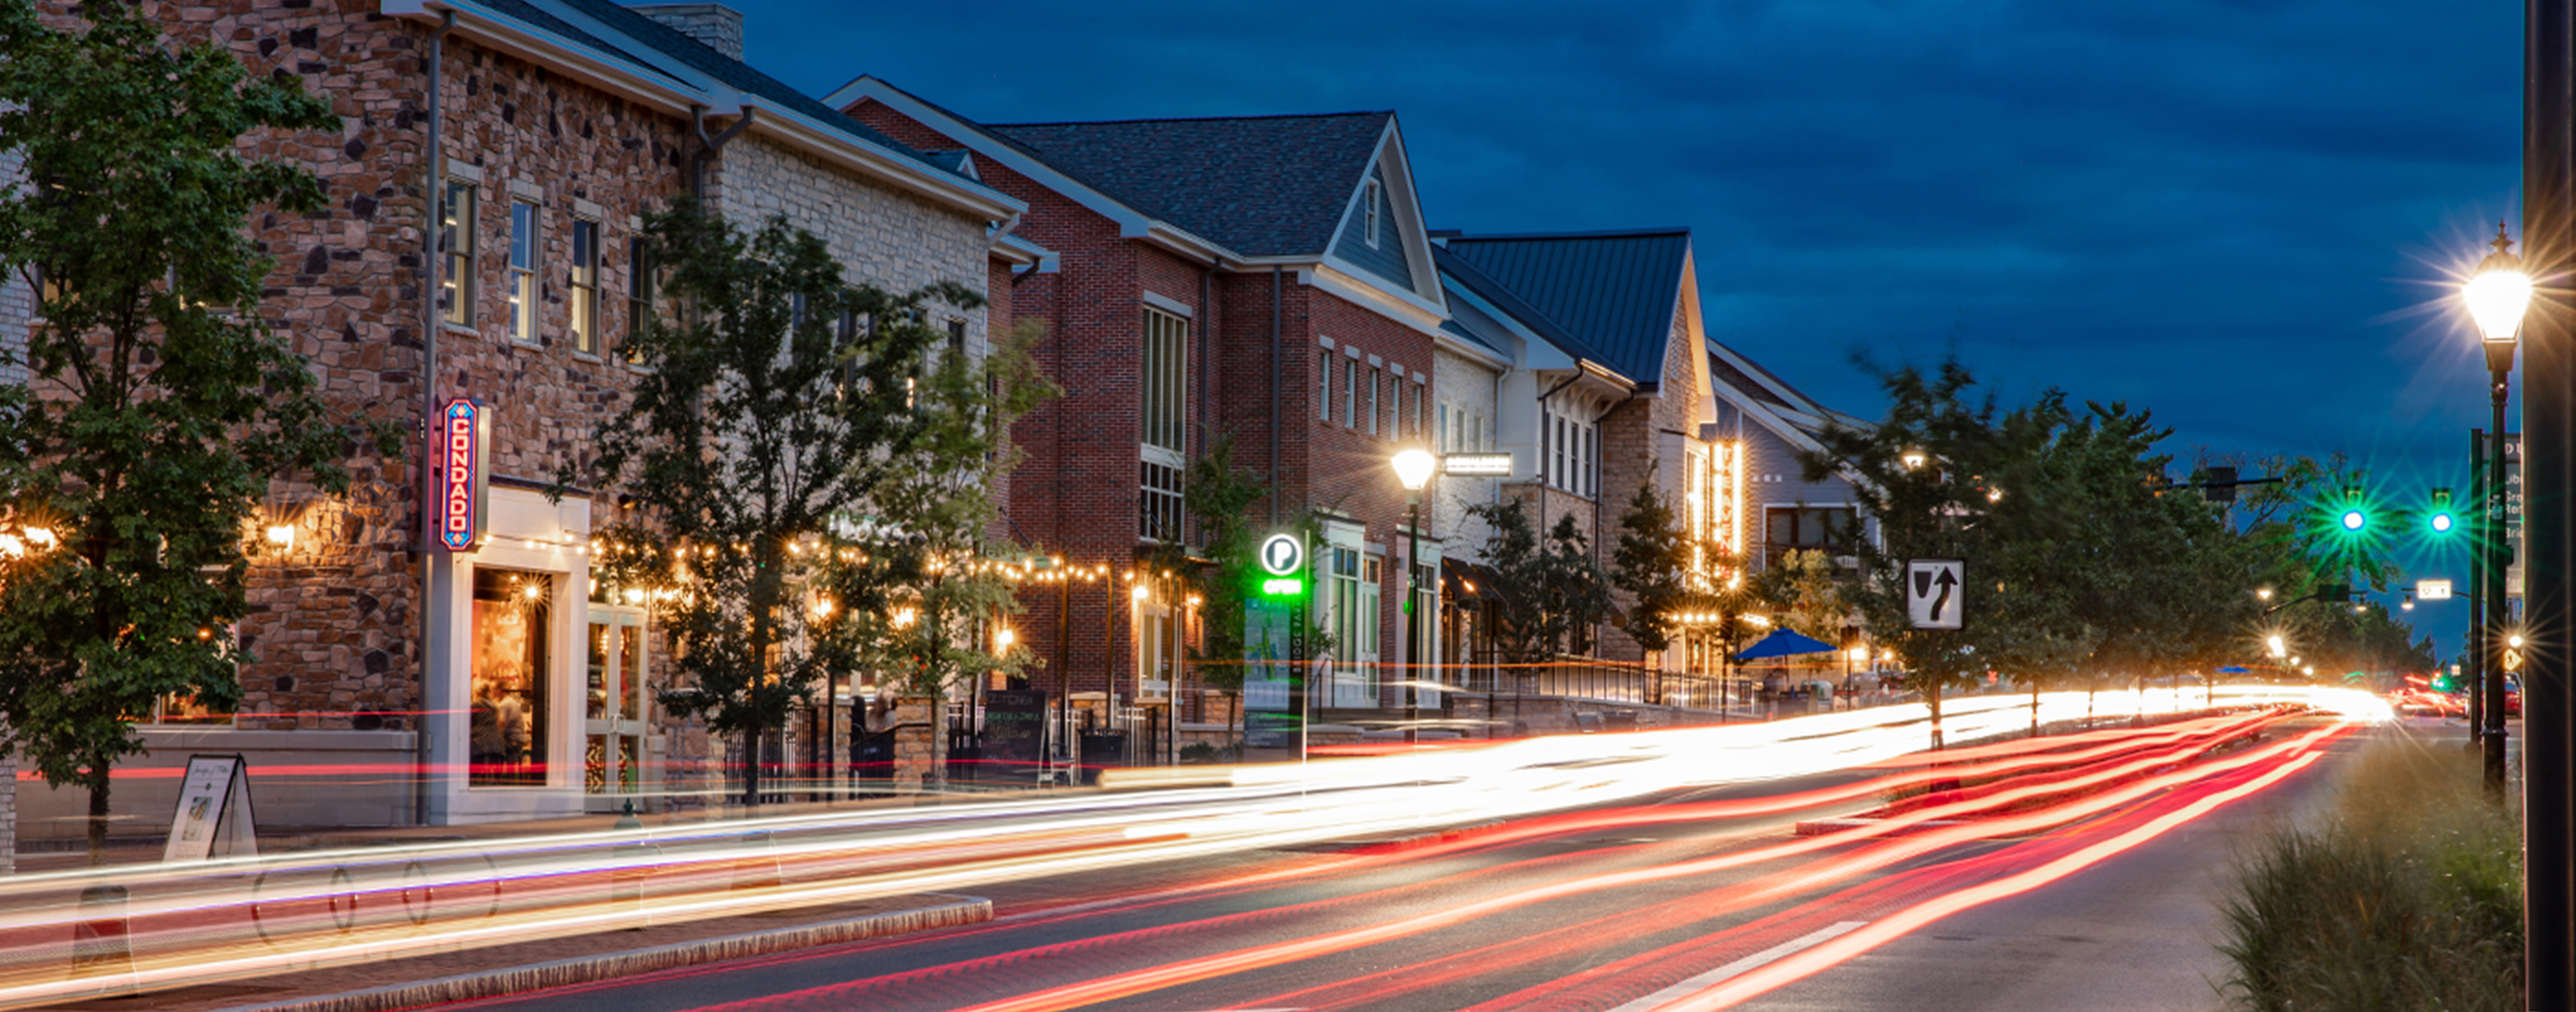 The City of Dublin, Ohio's Bridge Park West streetscape lit up at night.